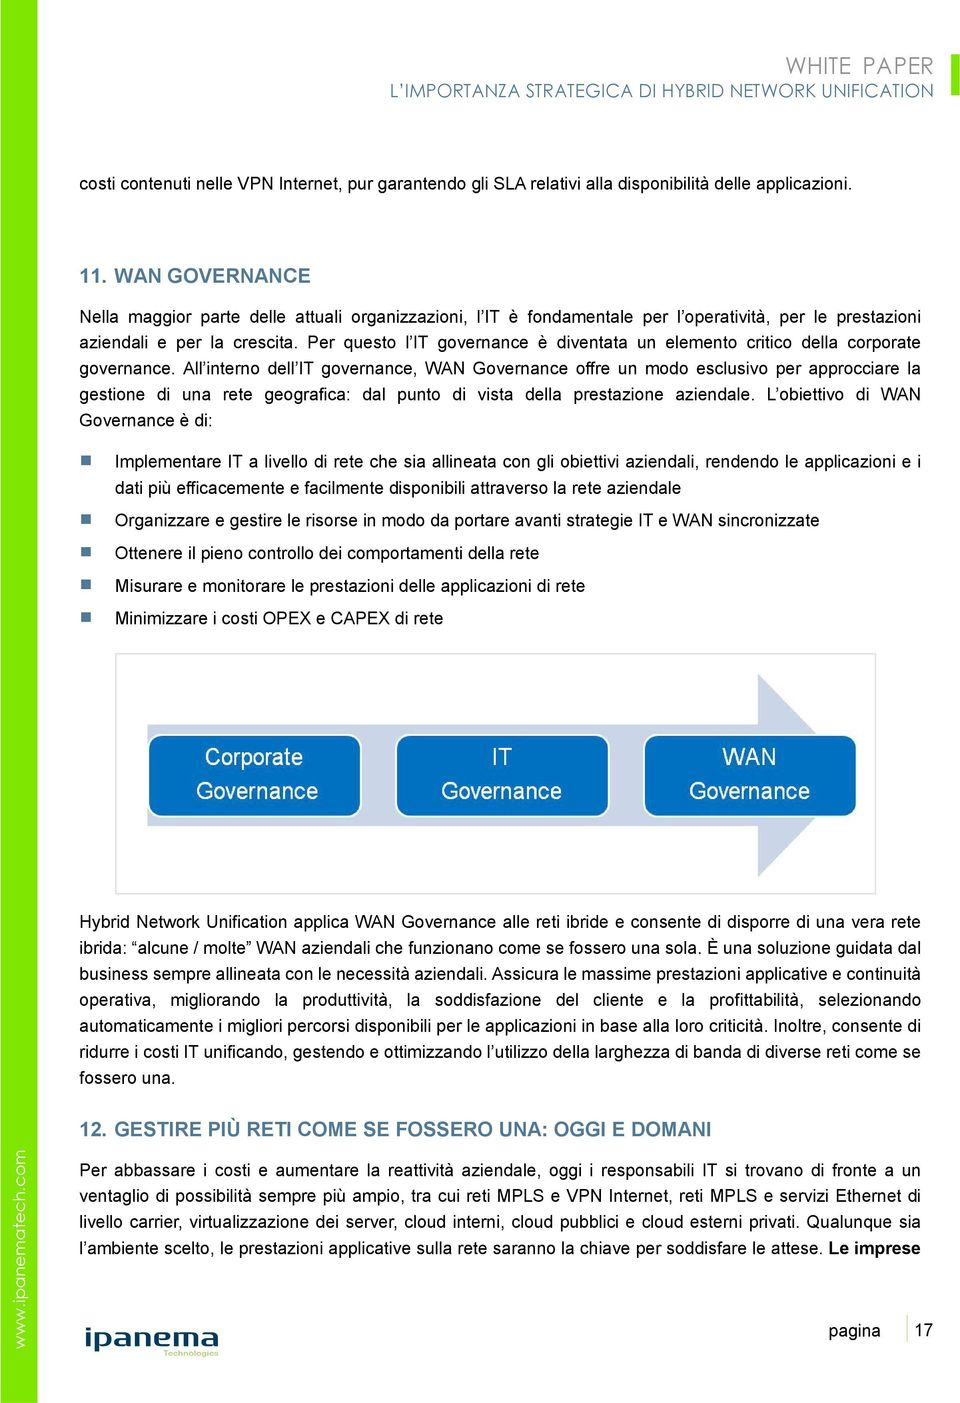 Per questo l IT governance è diventata un elemento critico della corporate governance.